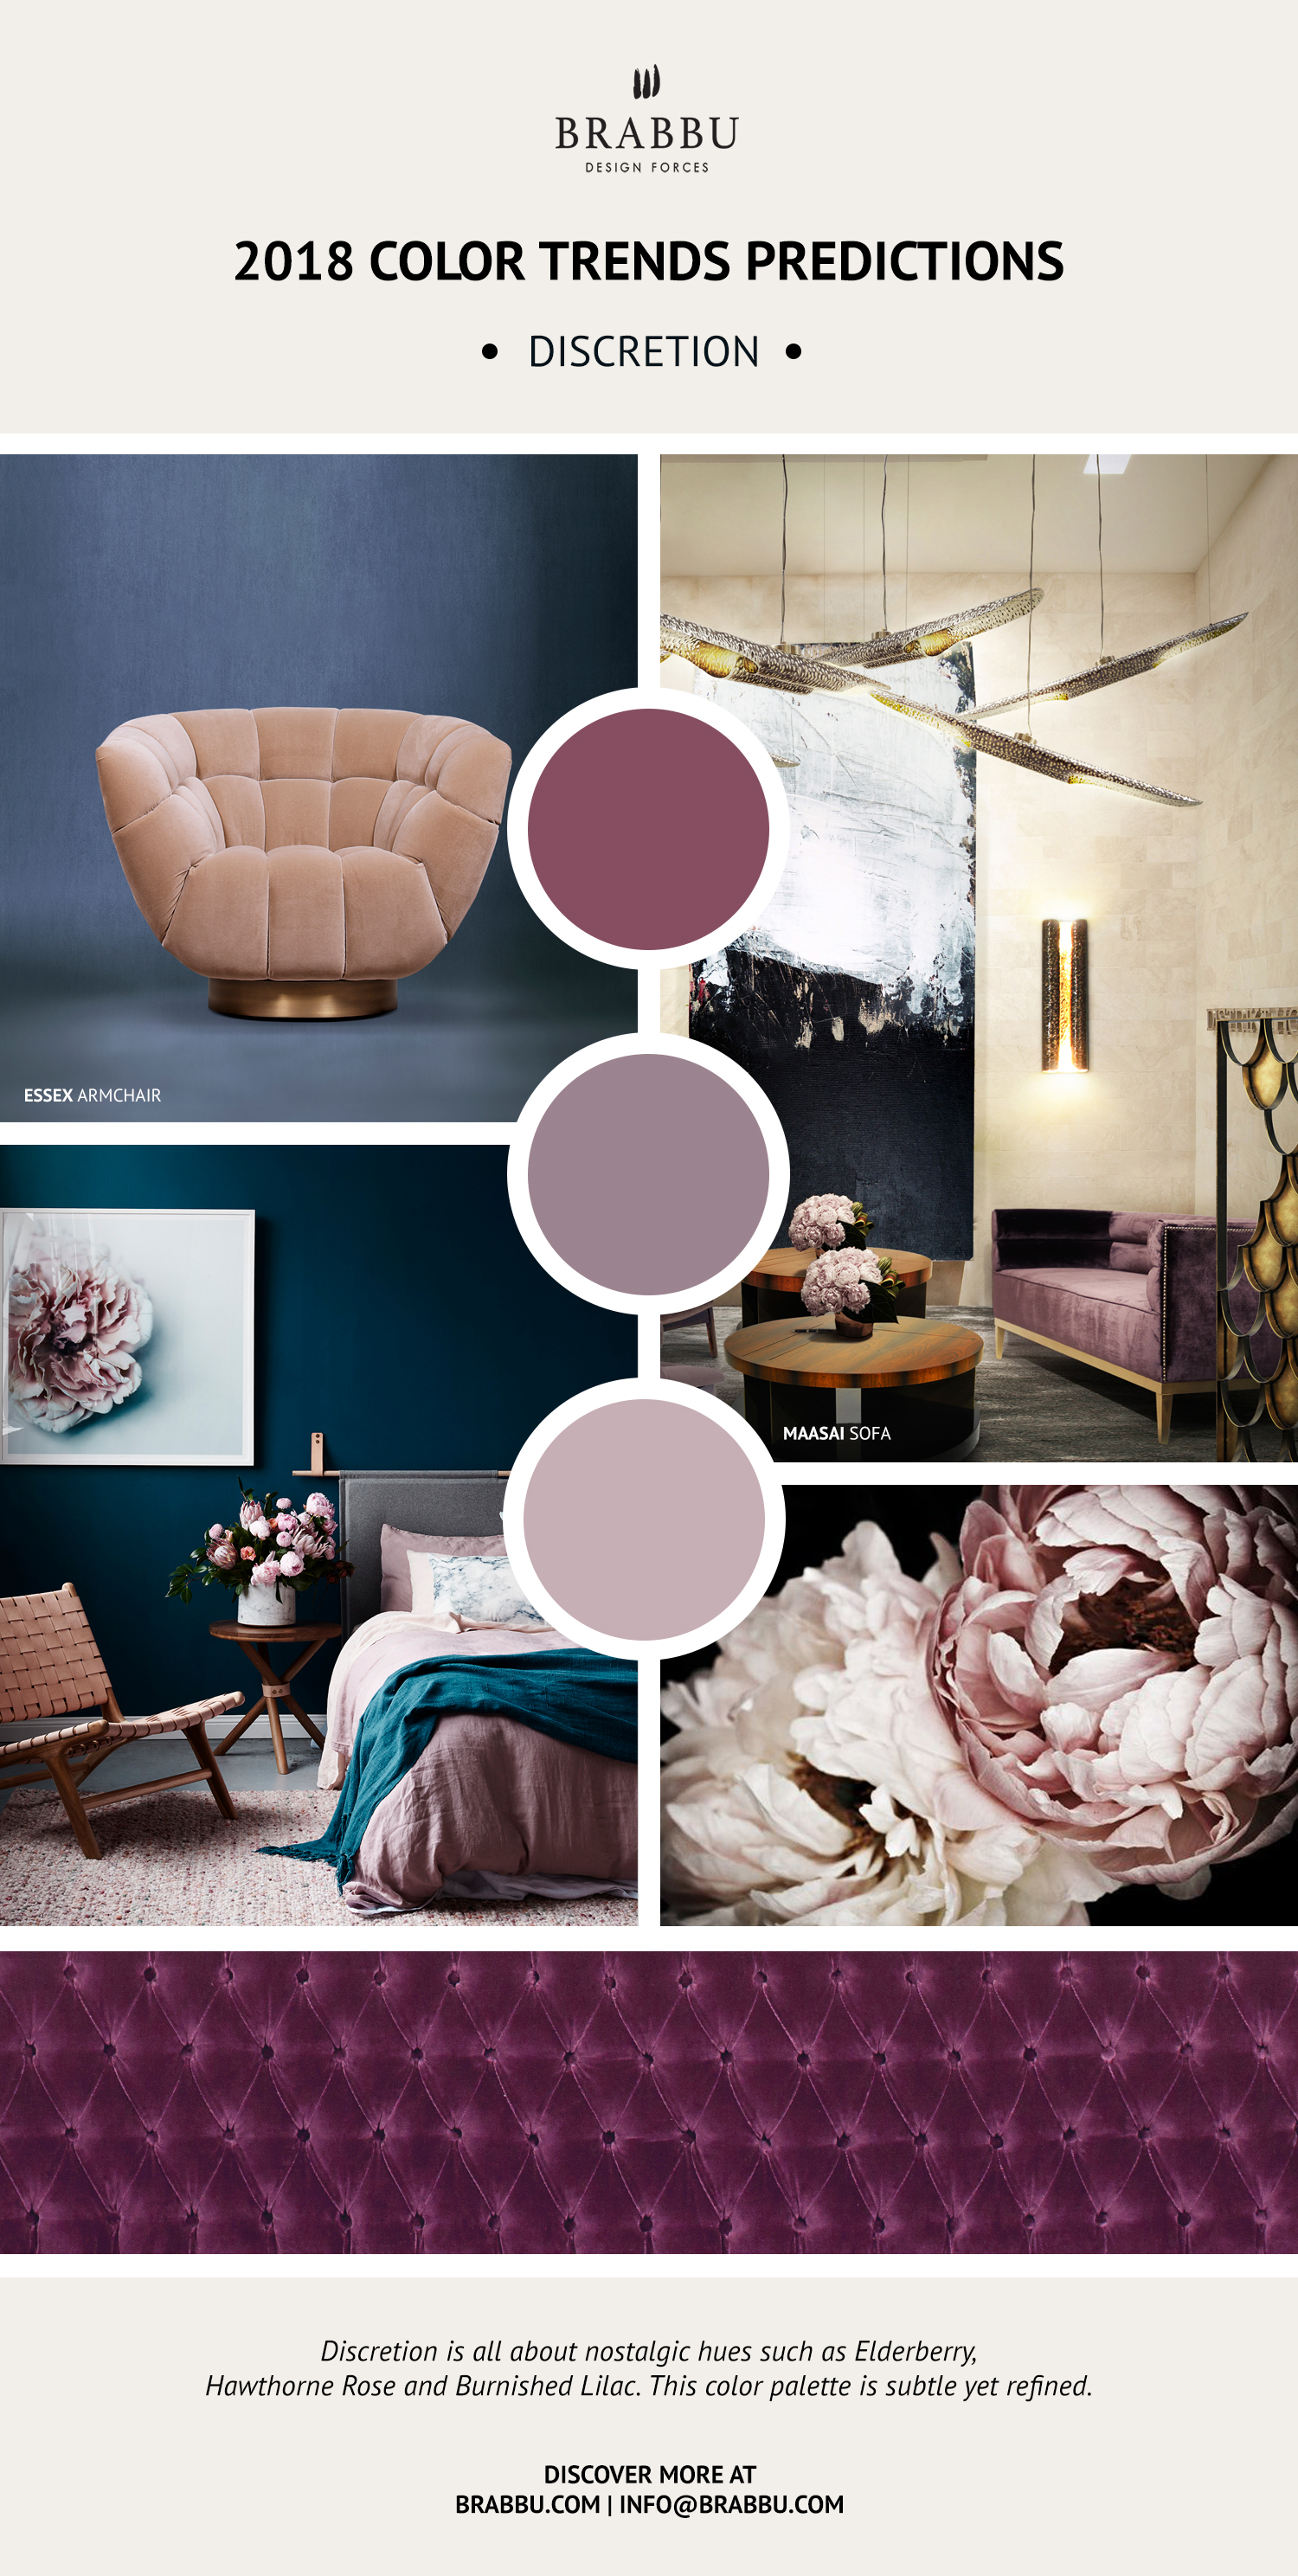 Pantone Color Trend Predictions For 2018 color trend Pantone Color Trend Predictions For 2018 F3768E399AEFA63C7075349ACE63CDF765D8A1399211912B7E pimgpsh fullsize distr modern rugs design Incredible Spring Color Ideas for Modern Rugs Design  F3768E399AEFA63C7075349ACE63CDF765D8A1399211912B7E pimgpsh fullsize distr